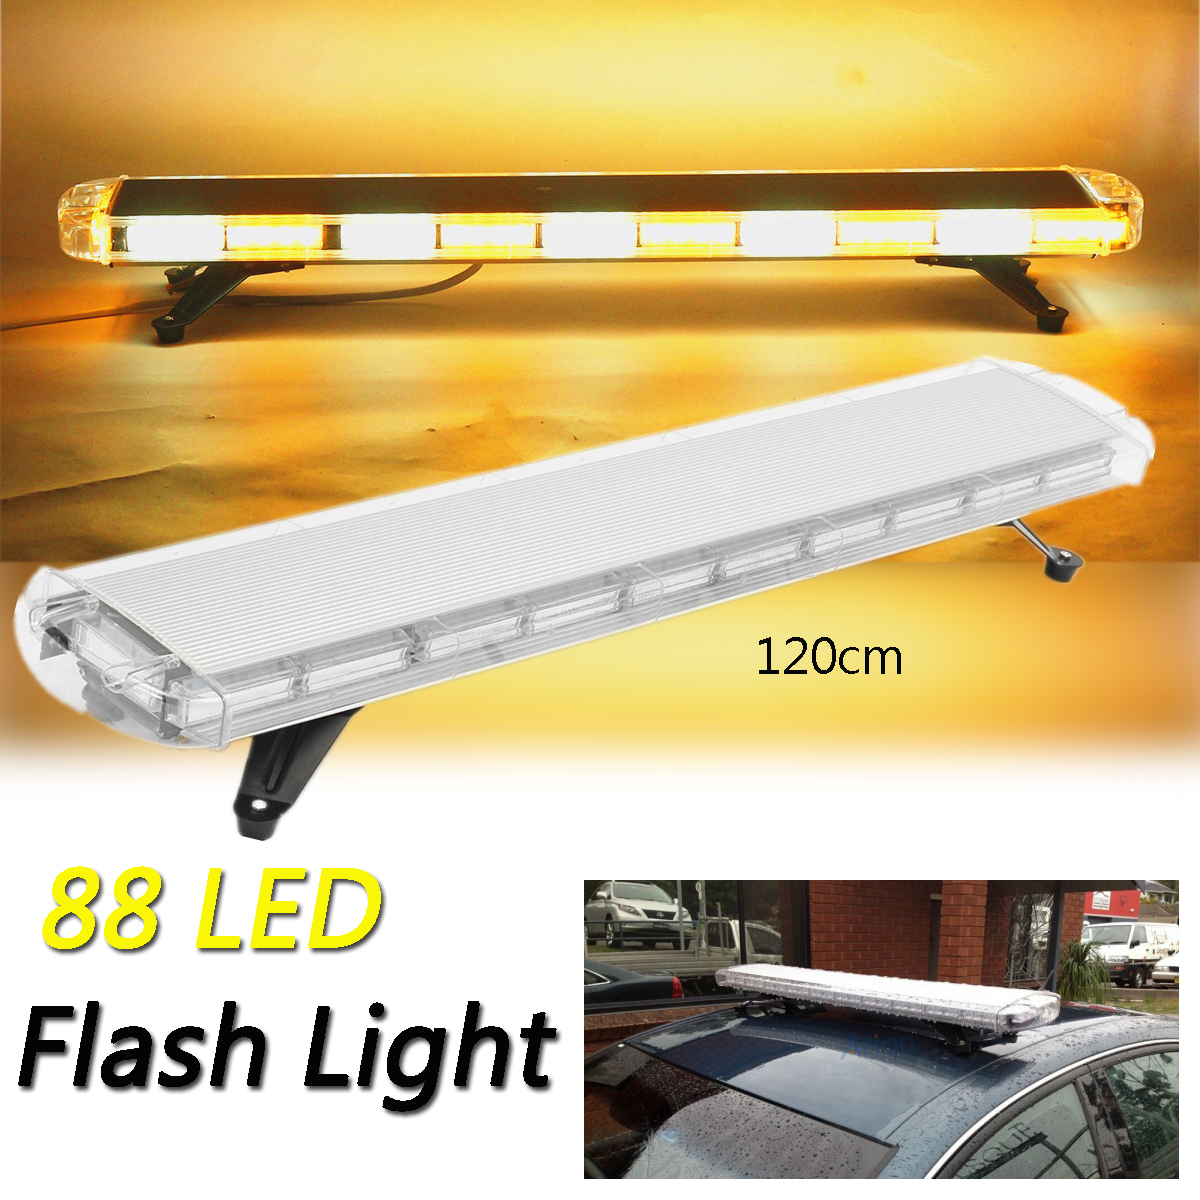 Audew 12V 88LED 47 Strobe Light Bar Yellow White Emergency Beacon Warn Tow Truck Response Fog led Flashing Lights Universal amber 30 led emergency strobe flashing warning light 12v 24v yellow warn beacon lights signal lamp for school bus truck atv utv